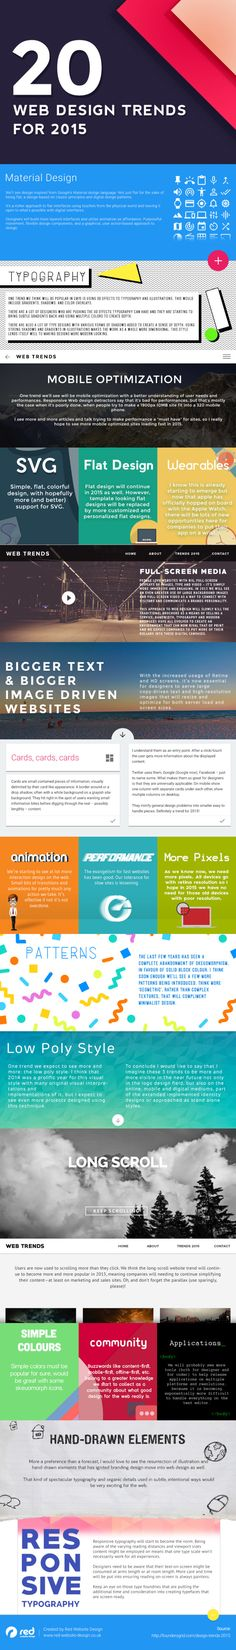 20 Web Design Trends for 2015